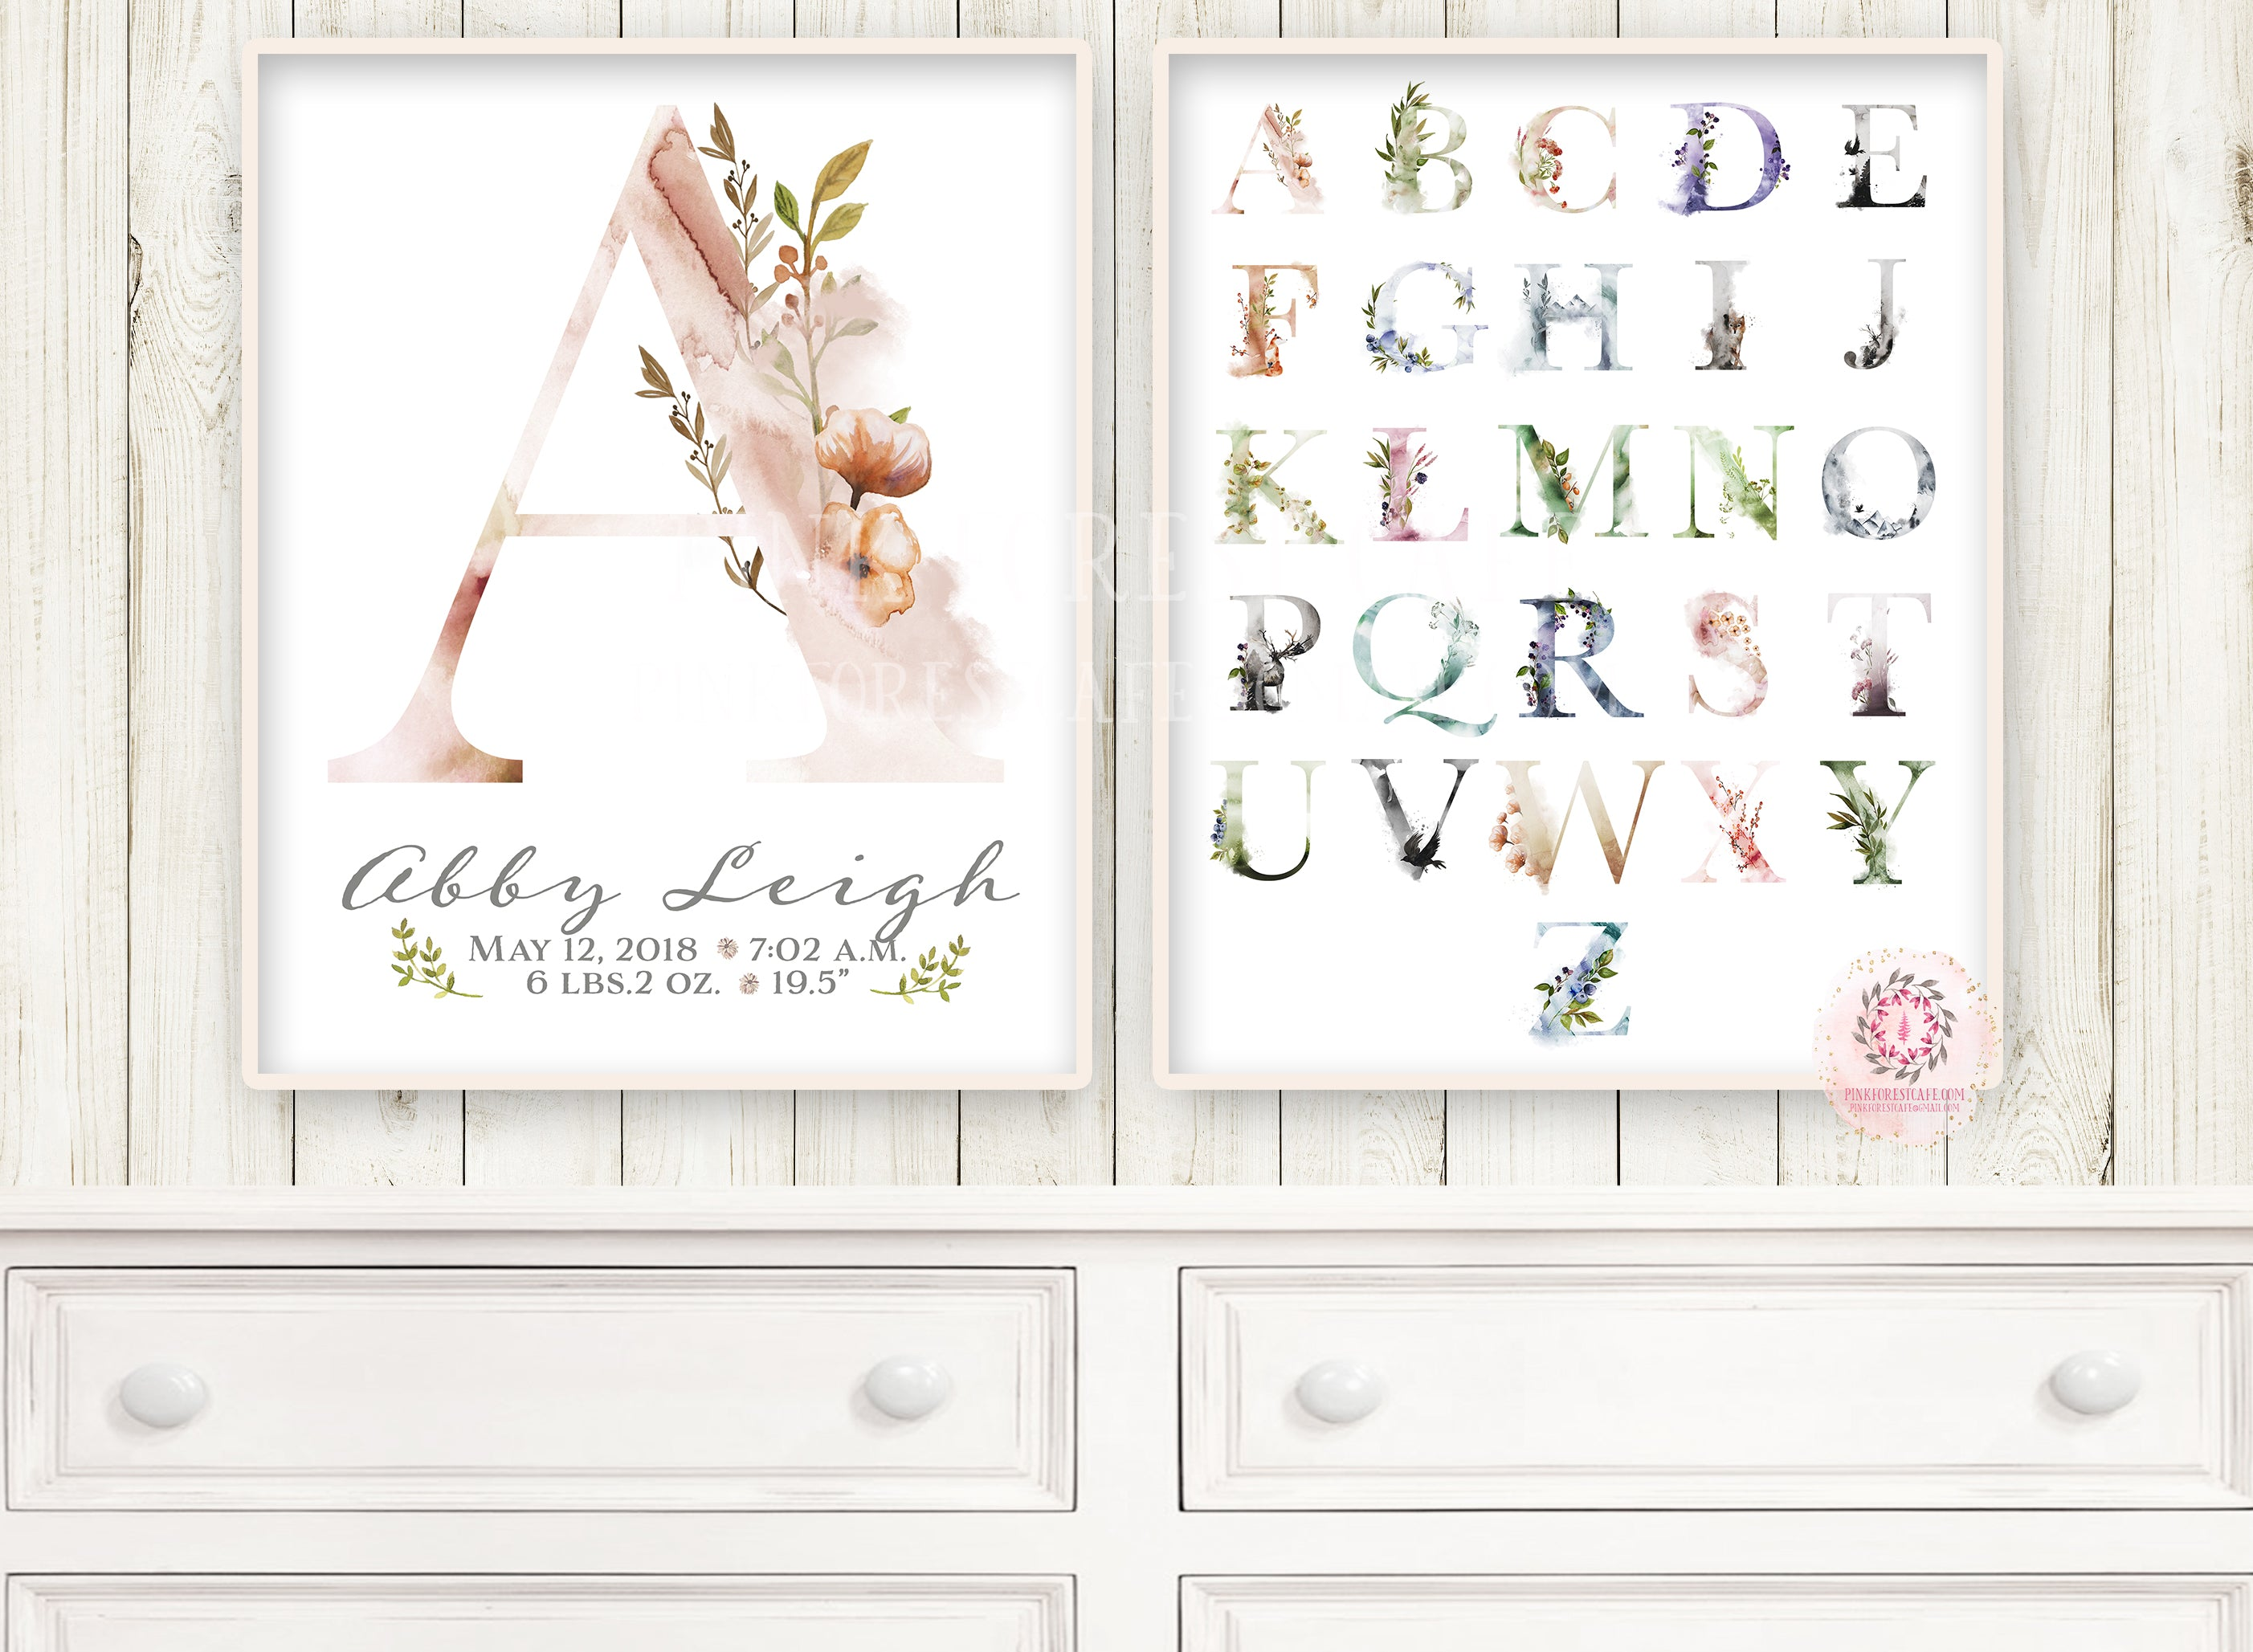 2 Ethereal Baby Name Monogram Initial Personalized Wall Art Print Alphabet ABC Sampler Initials Birth Stats Announcement Gift Watercolor Splash Floral Baby Nursery Newborn Keepsake Custom Customized Printable Decor